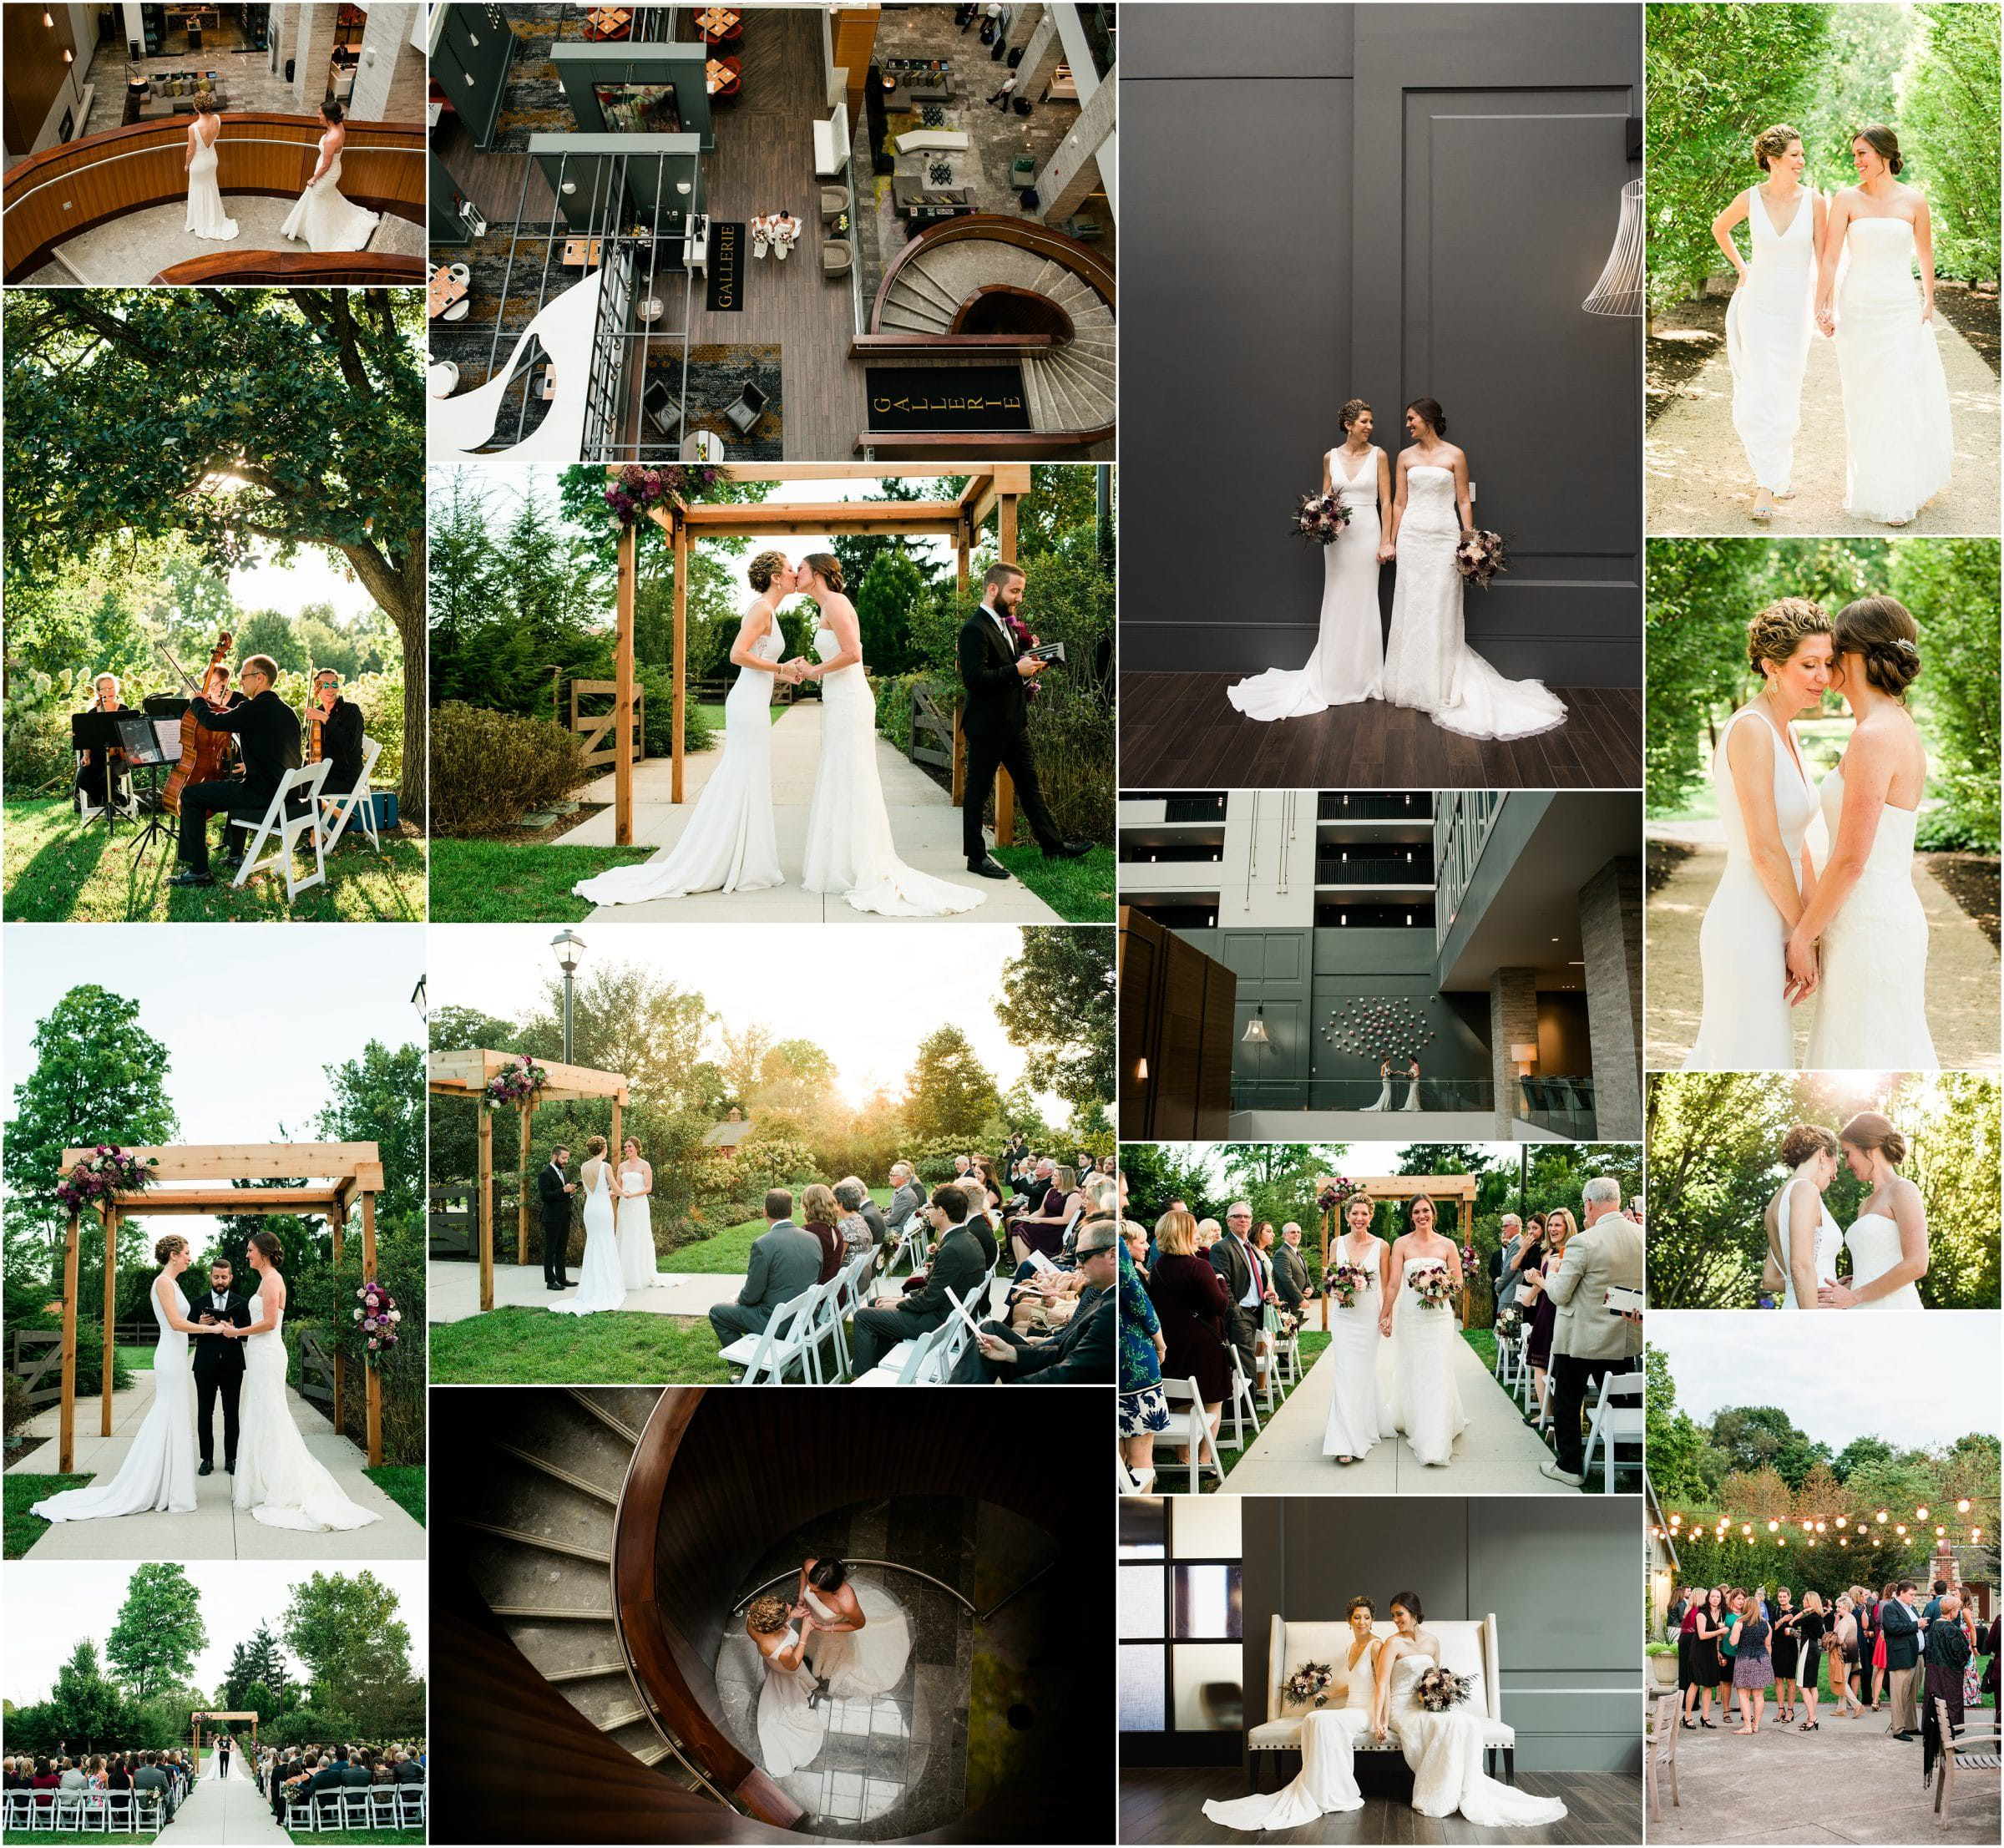 adam lowe photography, wedding photography, fine art wedding, photographer, style, love, fashion, editorial, commercial, gay, franklin park conservatory